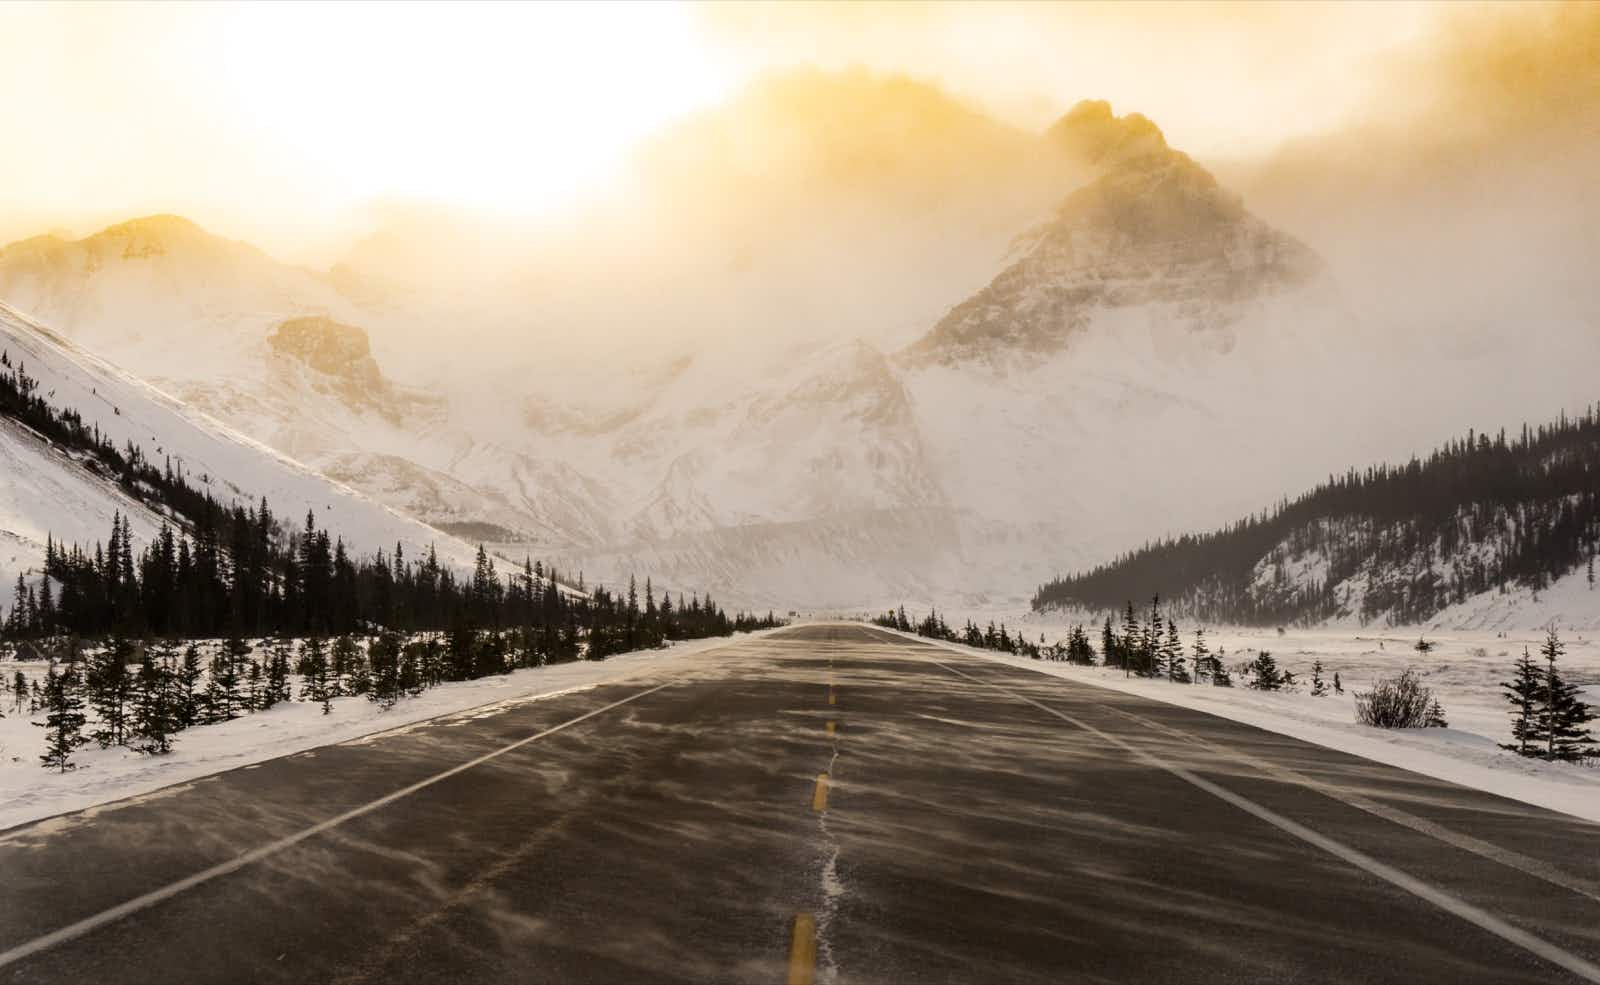 As the highest and most spectacular road in North America, the Icefields Parkway takes you about as close as you're going to get to the Rockies' craggy summits in your vehicle © Jonny Bierman / Lonely Planet